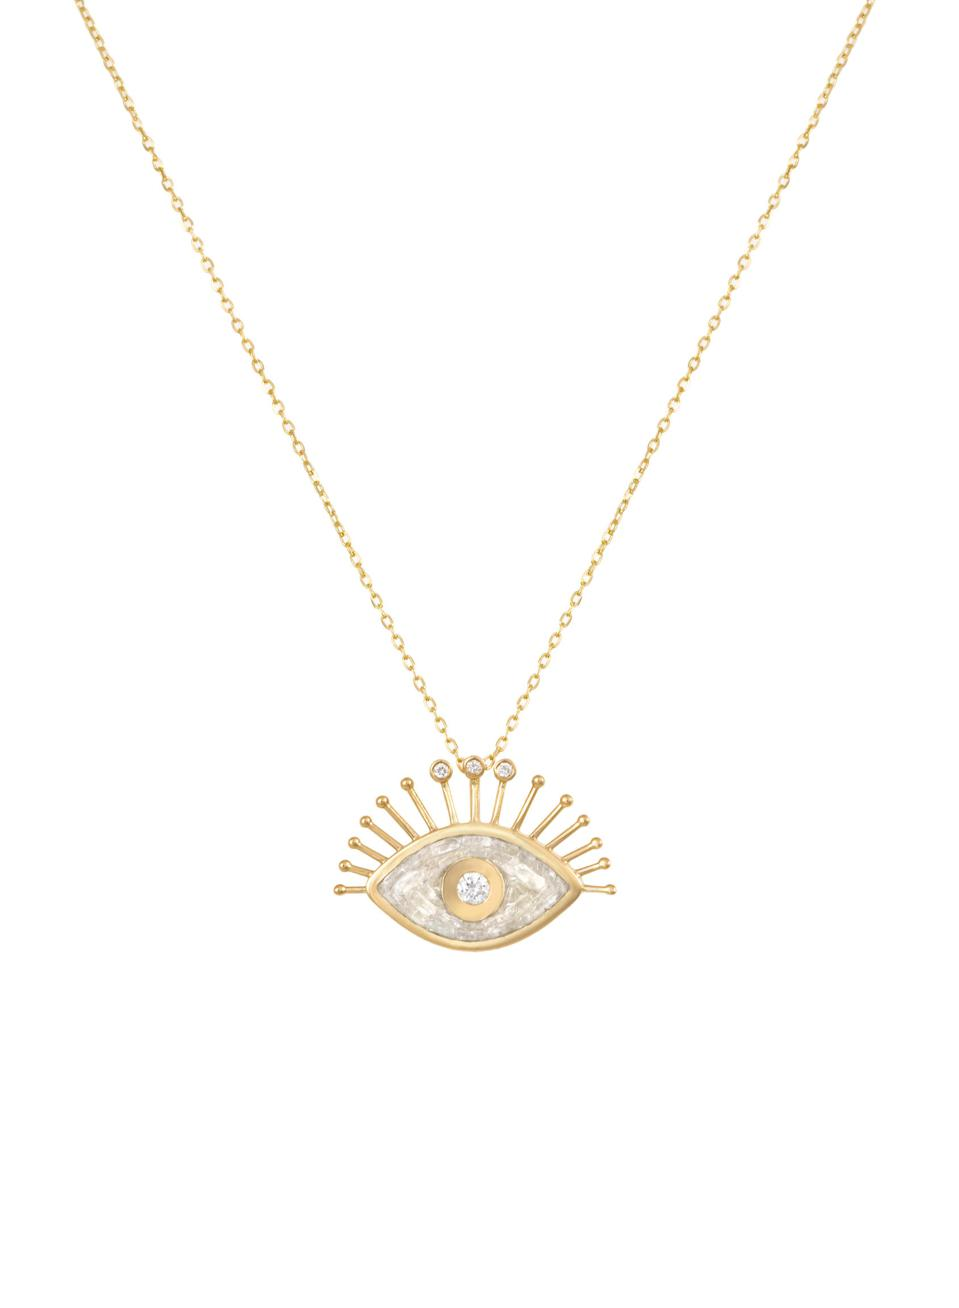 An 18K gold and diamond eye pendant necklace by Dima and Tanya Nawbar of L'atelier Nawbar